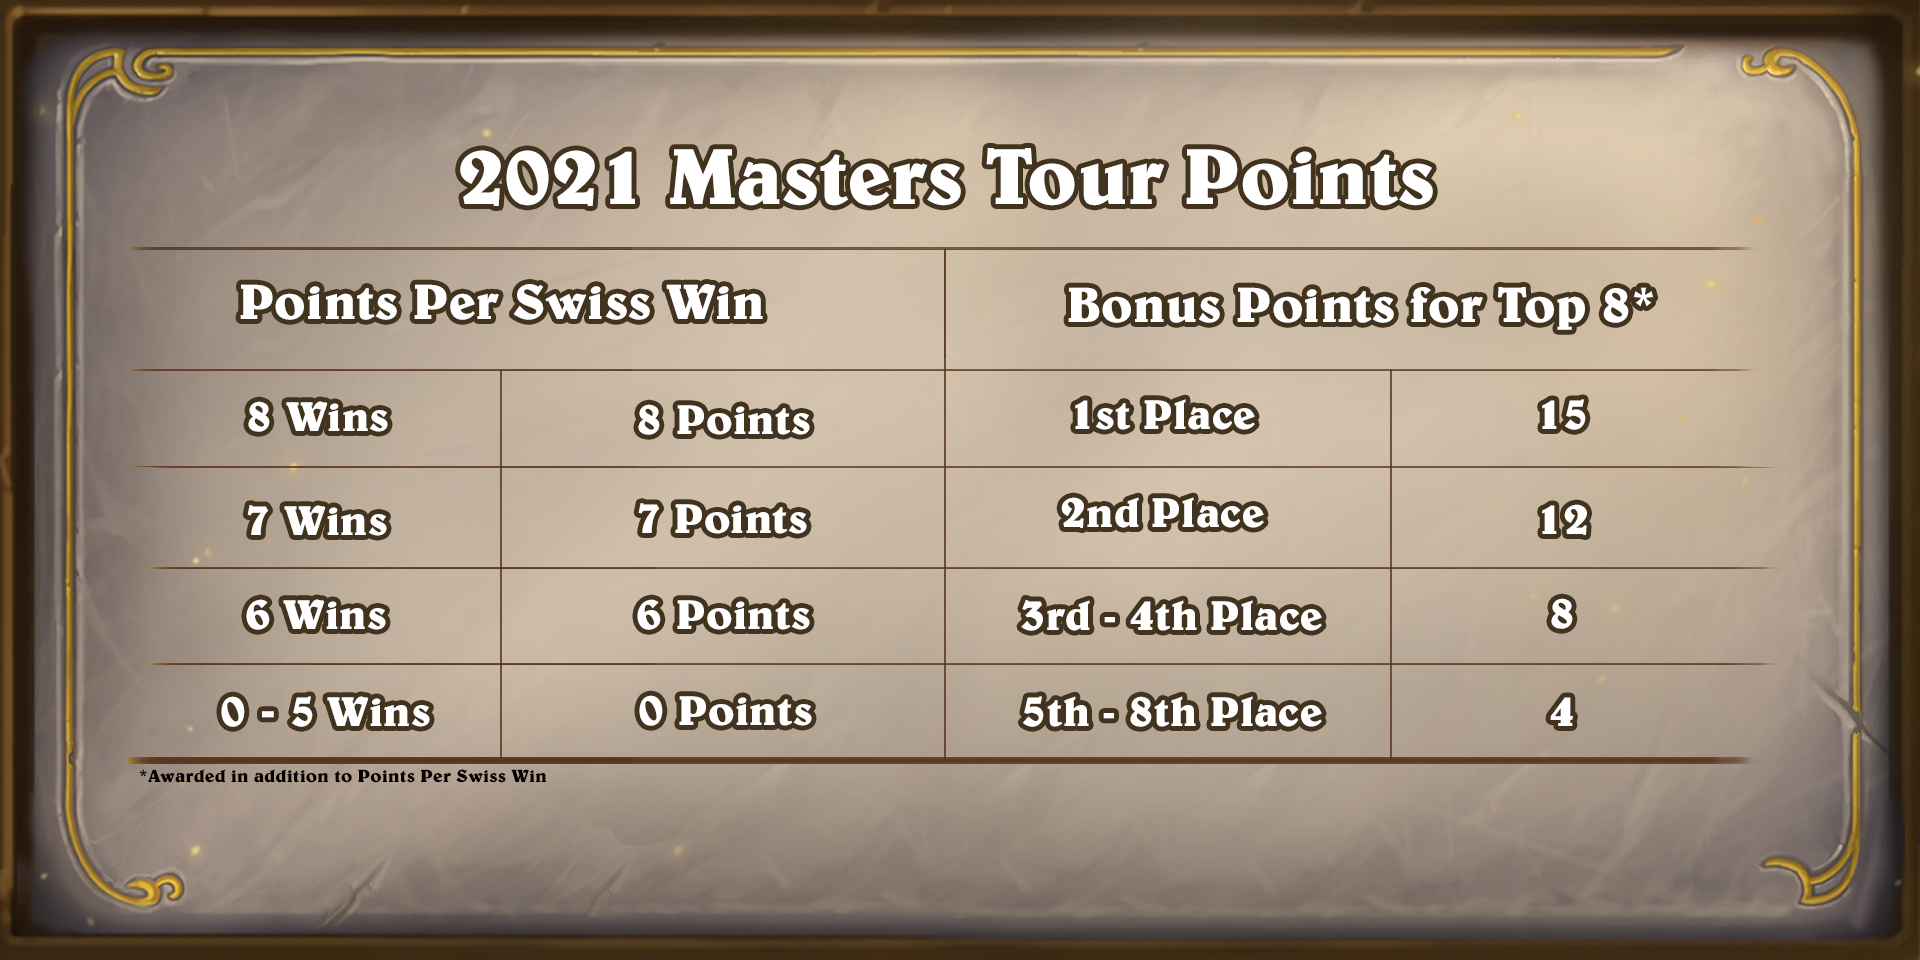 HS_MS_MastersPoints_System_1920x1080_midyear%20version.png